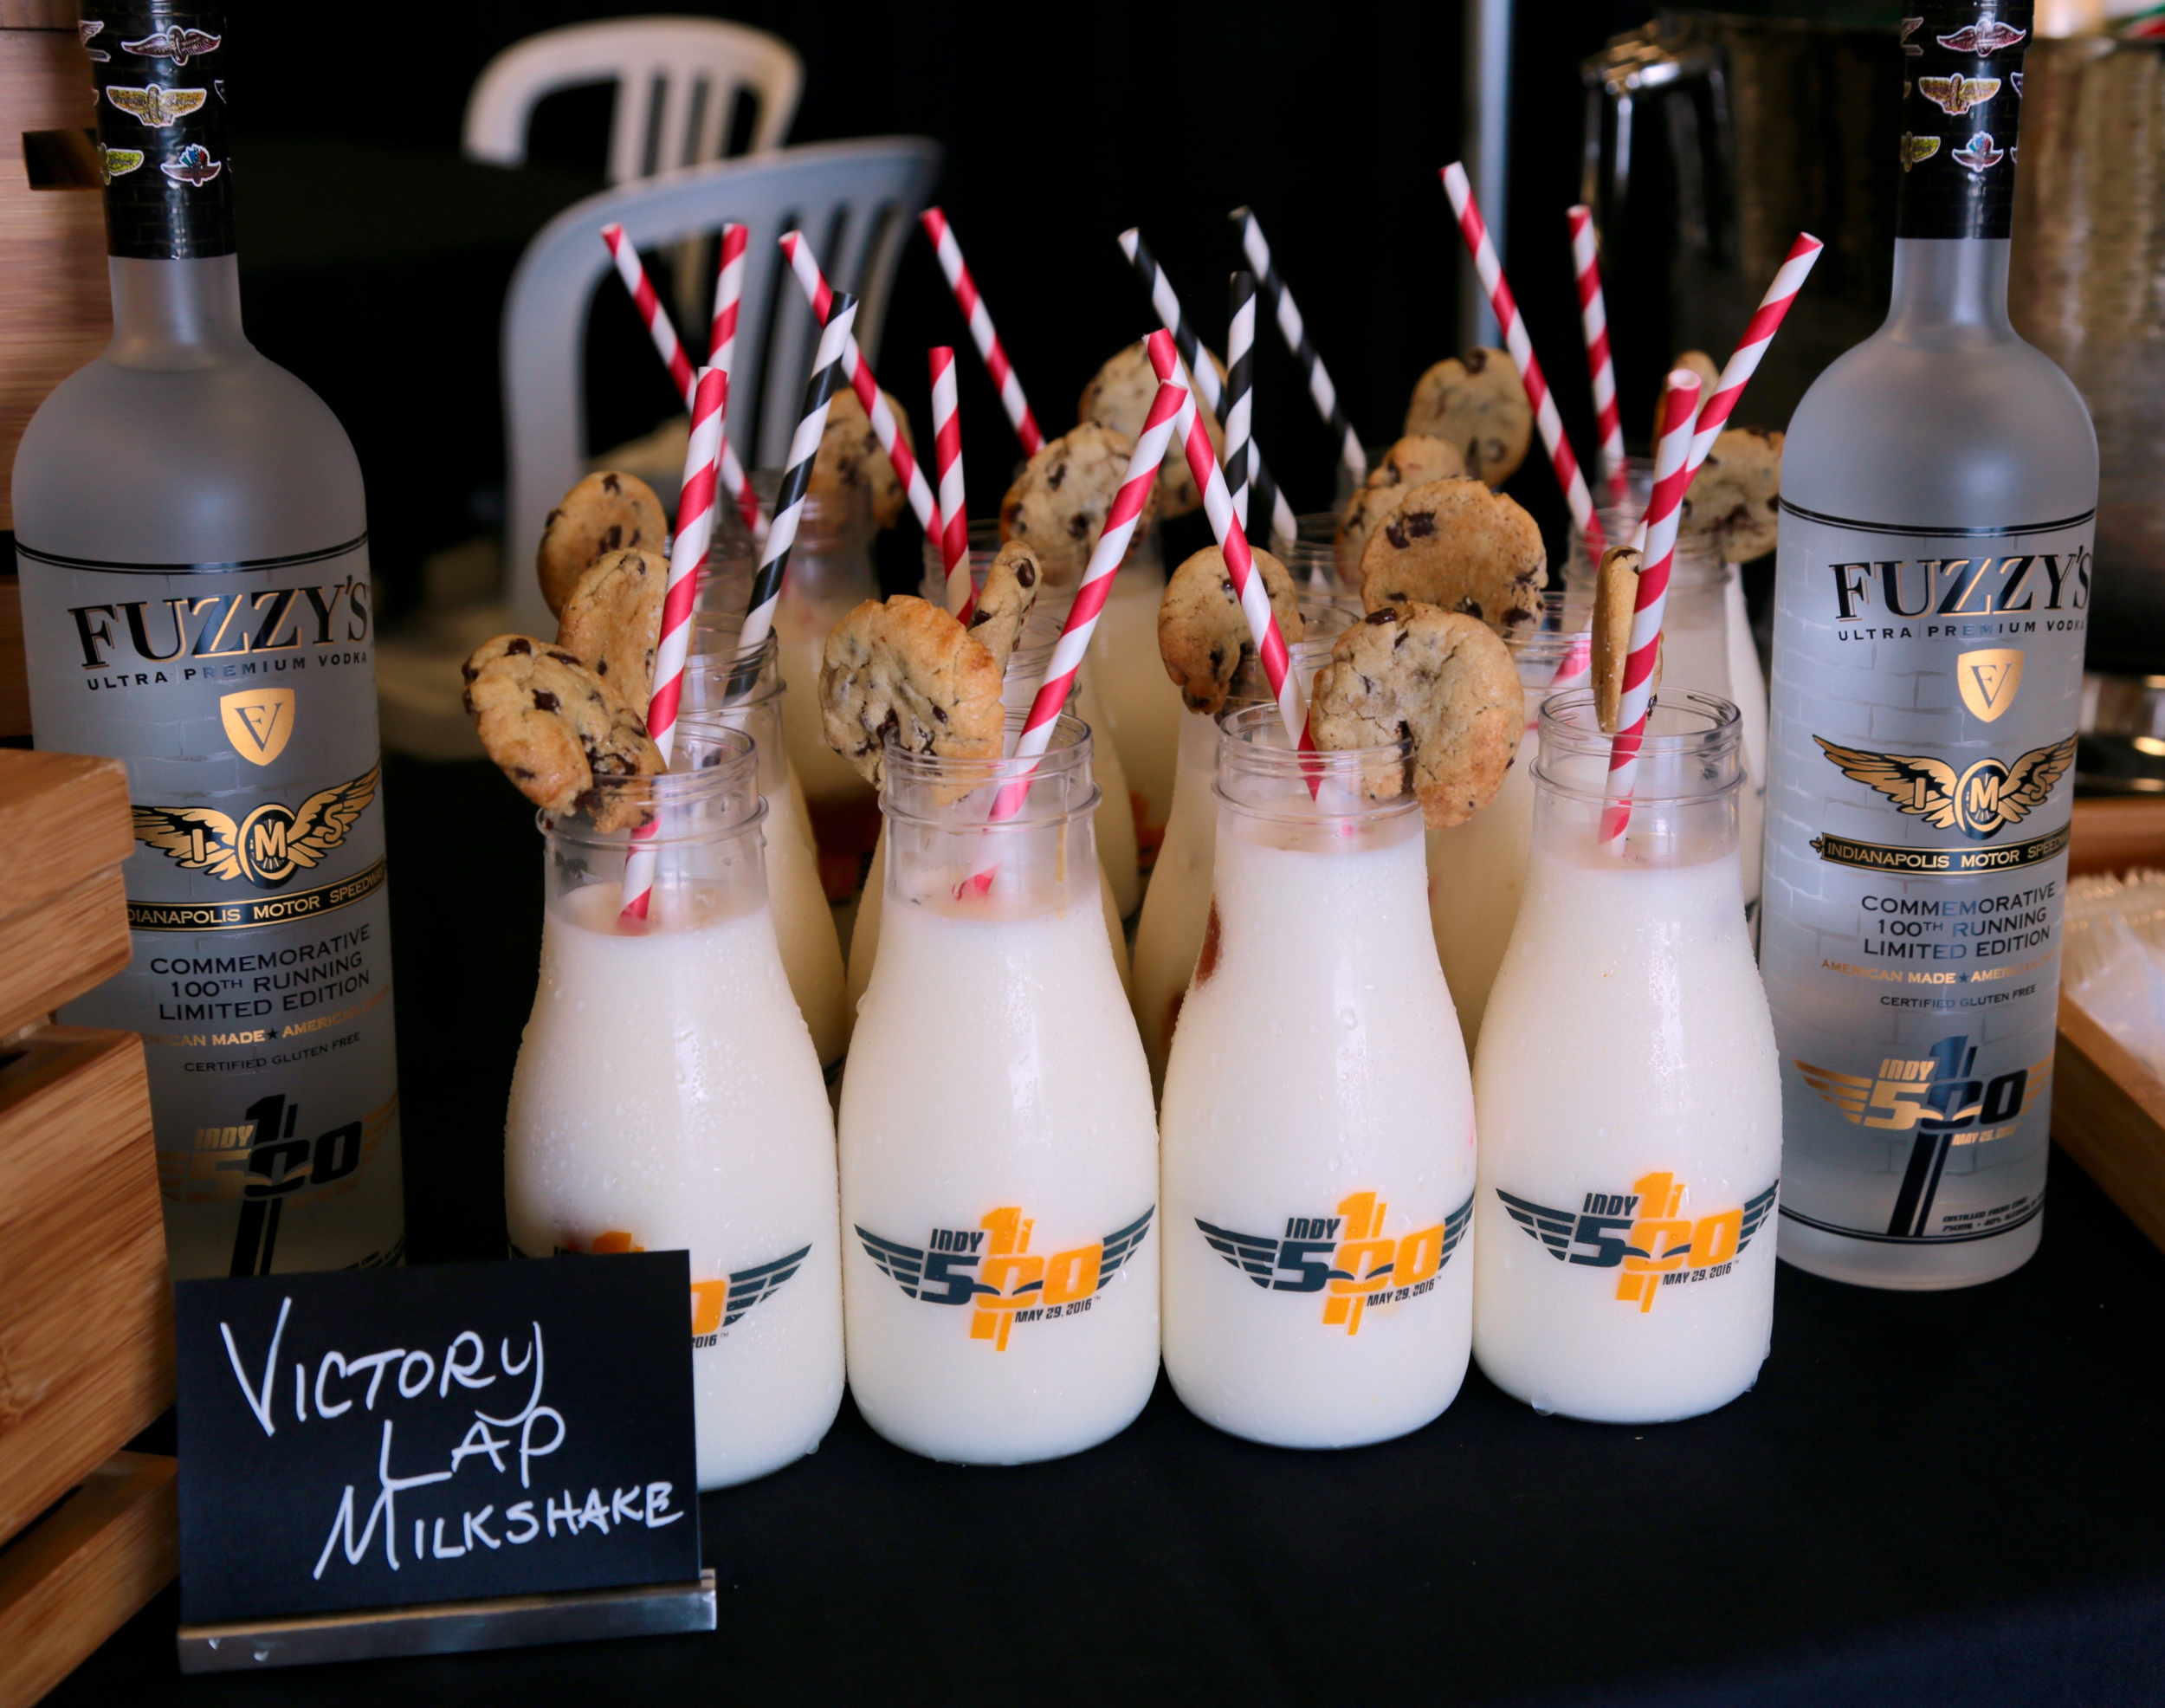 Victory Lap Milkshake - $12  Cookies and milk, for grown ups, is a salted caramel milkshake for 21+ racing fans, spiked with Fuzzy's Vodka, served in a commemorative Indy 500 milk bottle, topped with a Clabber Girl chocolate chip cookie.  Available in Concessions, Gate 1 area, Hulman Terrace Club. (Photo/Levy Restaurants)